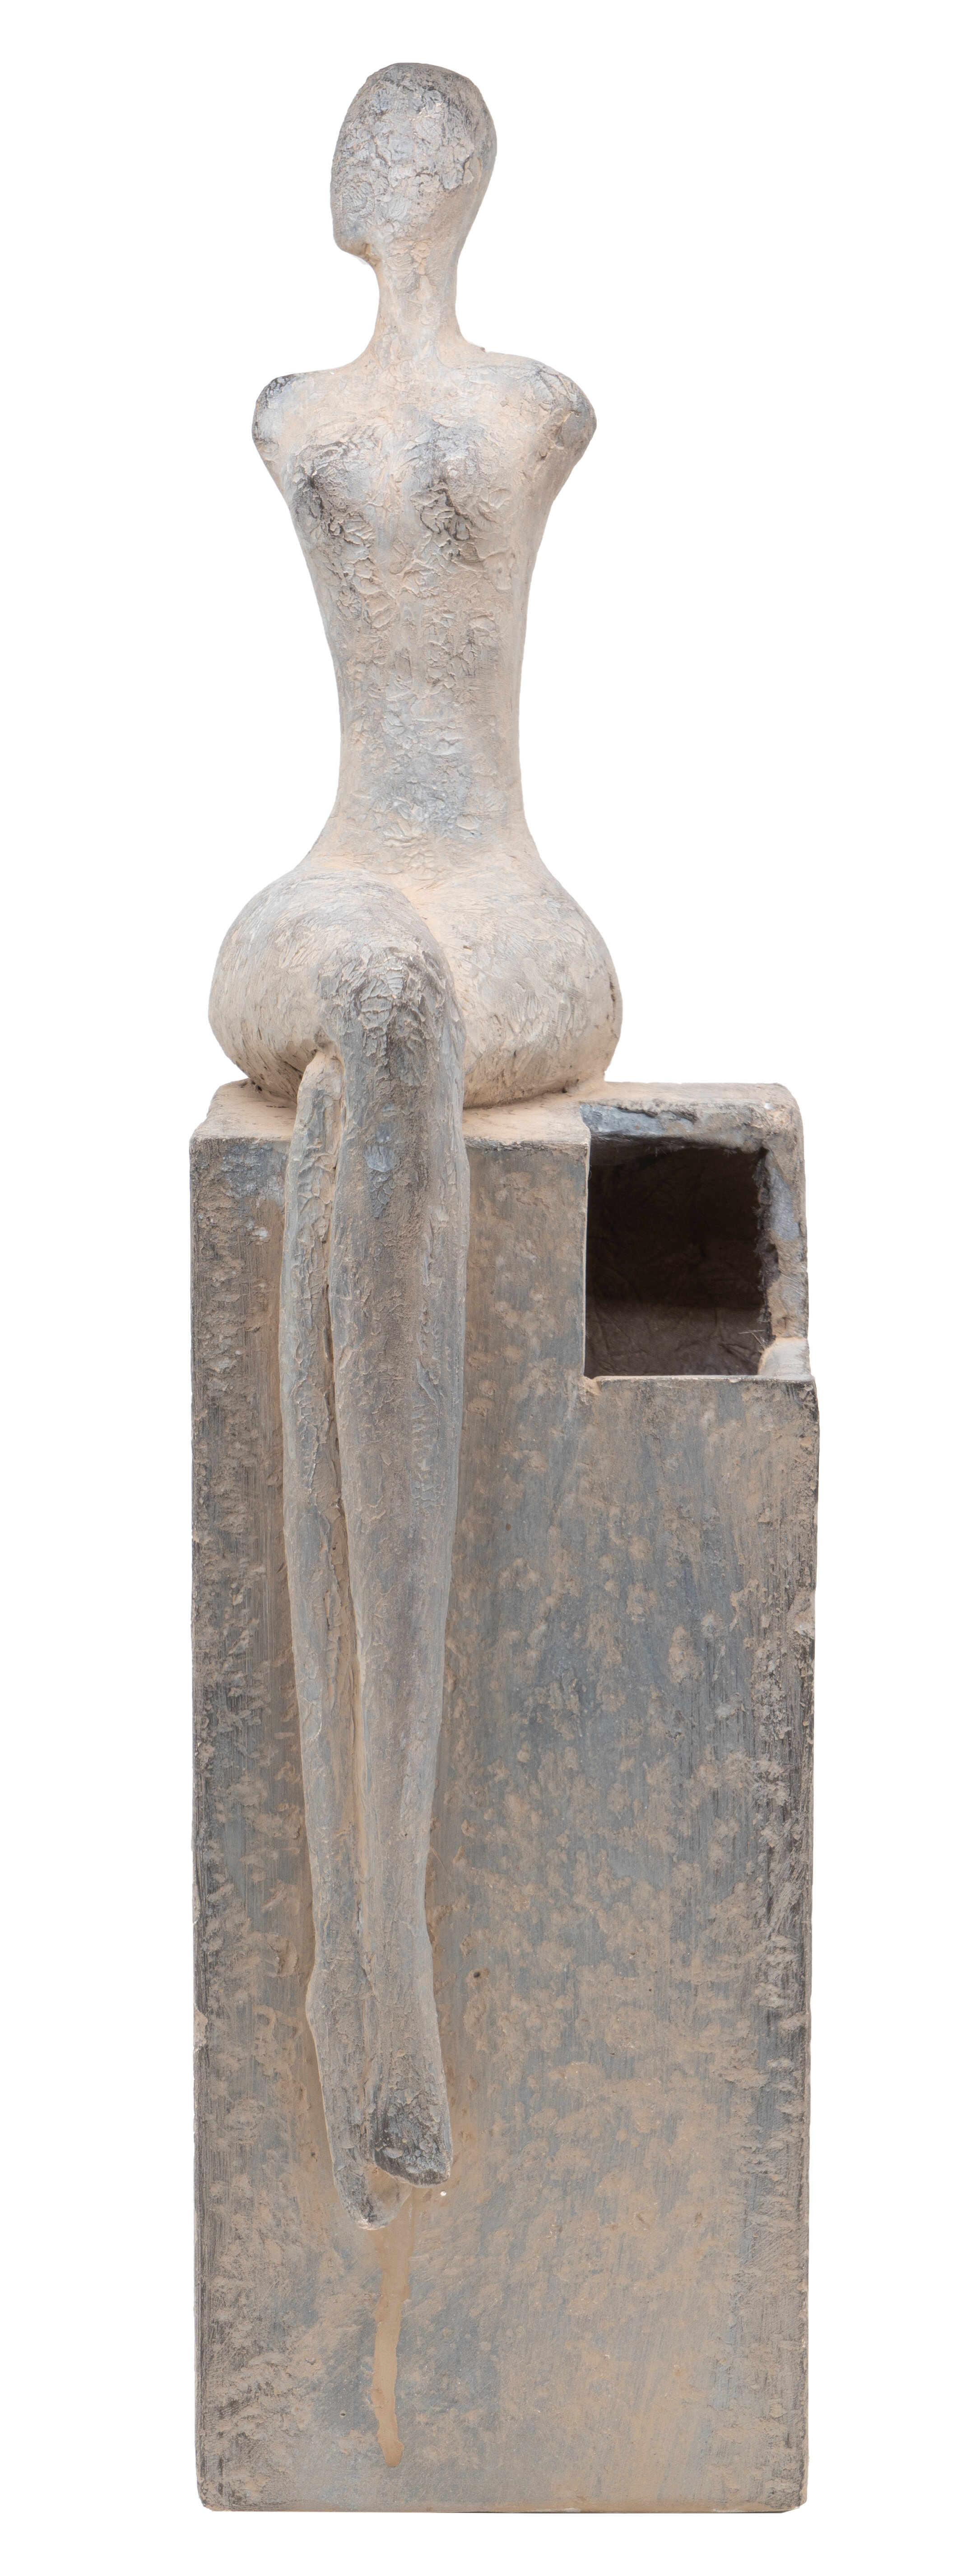 Rectangle Urns And Statues Planters You Ll Love In 2021 Wayfair